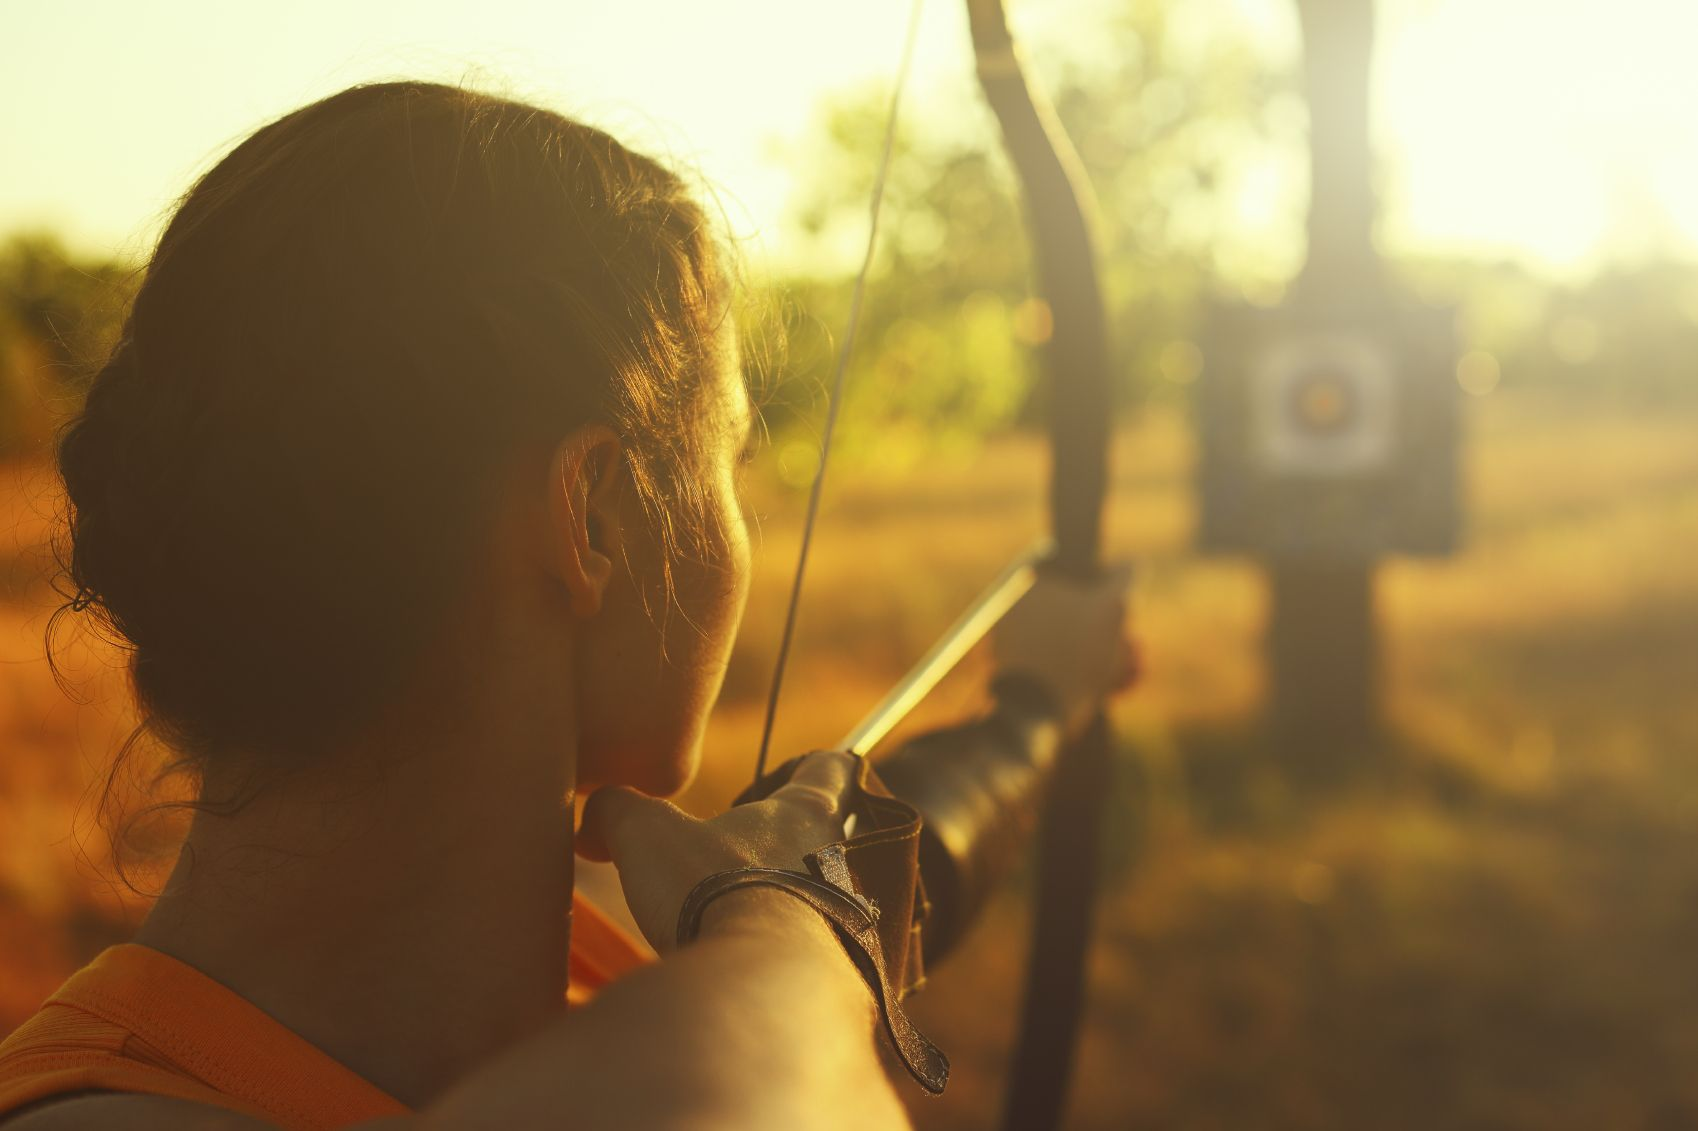 Hitting your target in parenting requires direction and focus